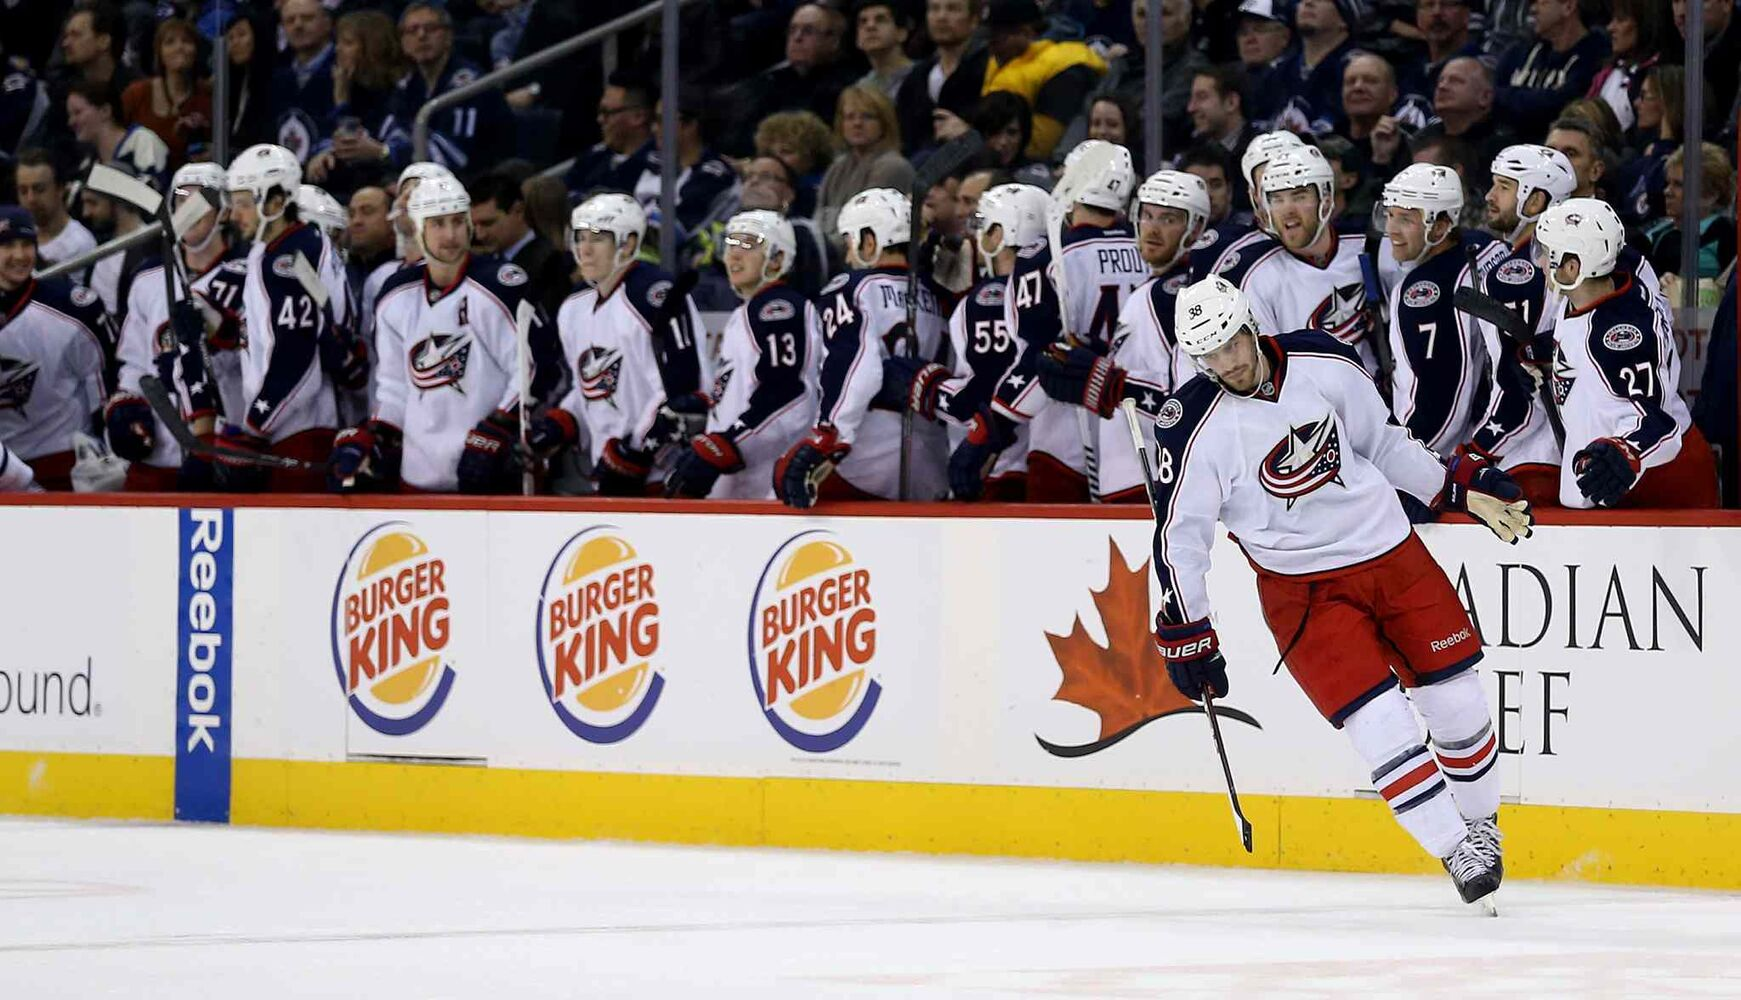 Columbus Blue Jackets' Boone Jenner (38) celebrates with his team after he scored a penalty shot goal against Winnipeg Jets' goaltender Ondrej Pavelec (31) in the second period at MTS Centre. (Trevor Hagan / Winnipeg Free Press)